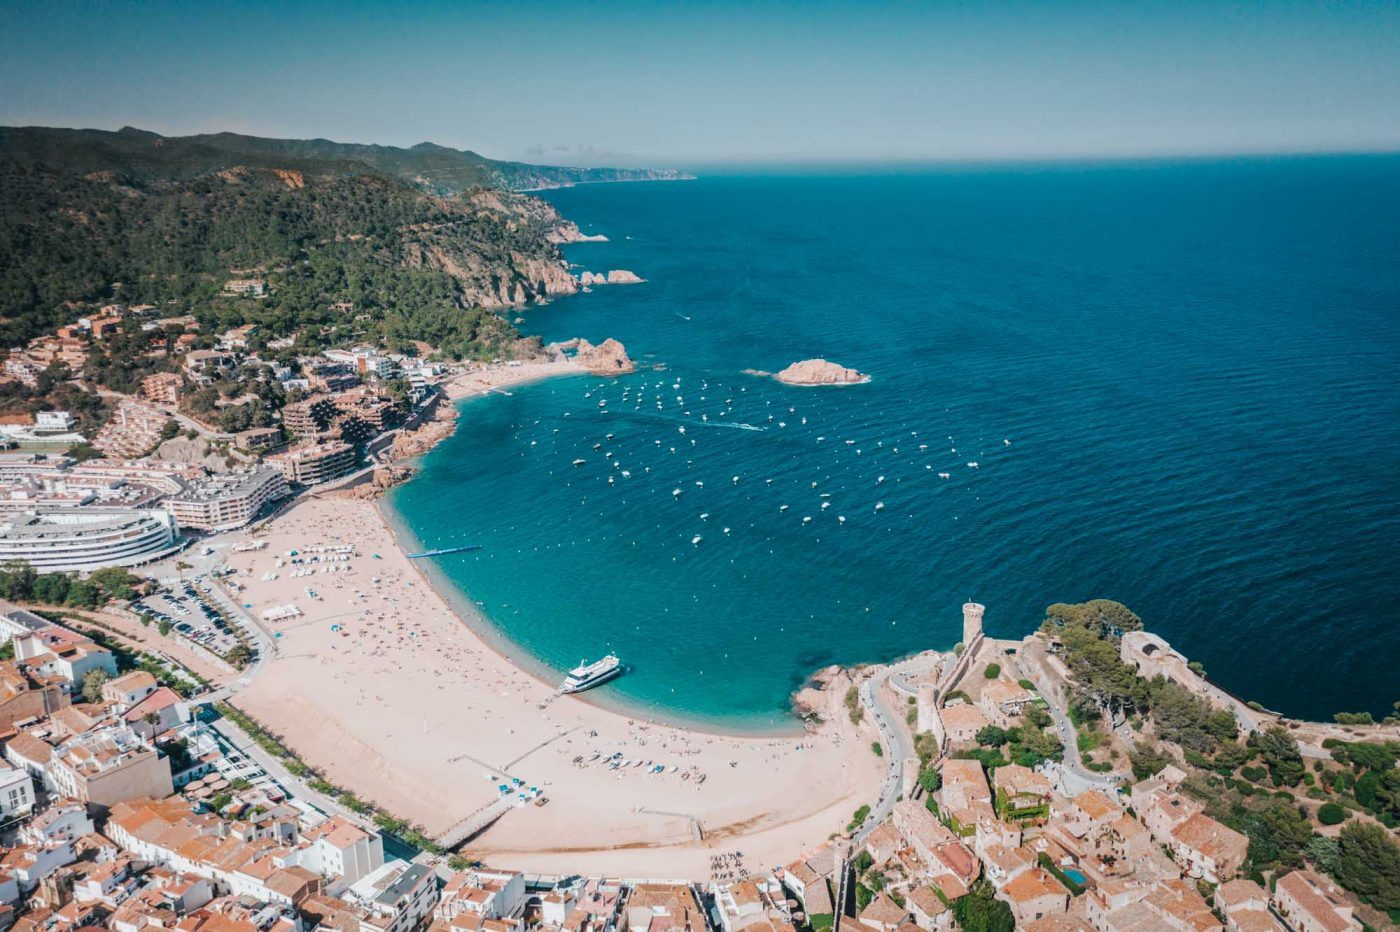 Day trips from Barcelona: Tossa de Mar, Costa Brava